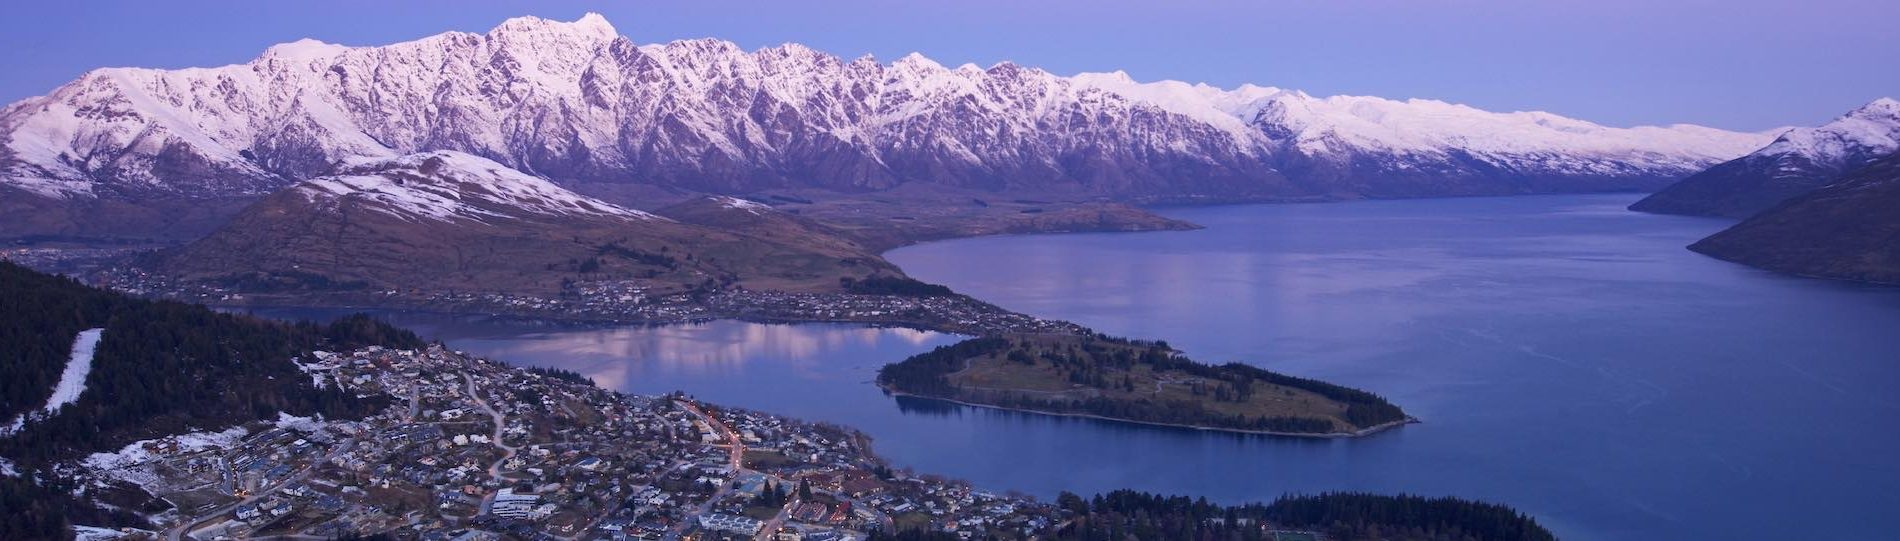 city buildings, river and snowy mountains in queenstown